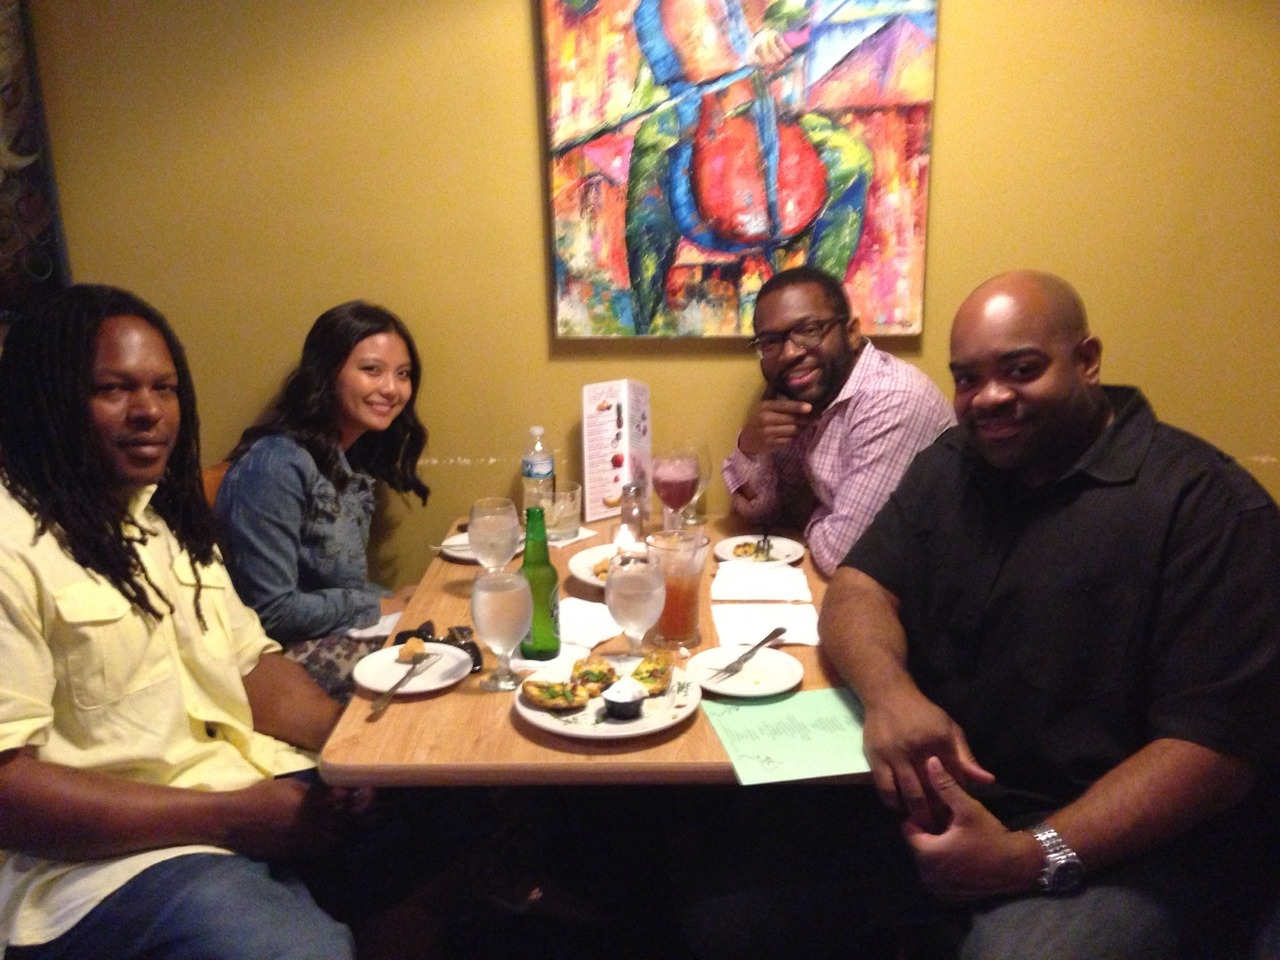 Team dinner in The D! #Funded with Shaka at 1917 American Bistro – View on Path.